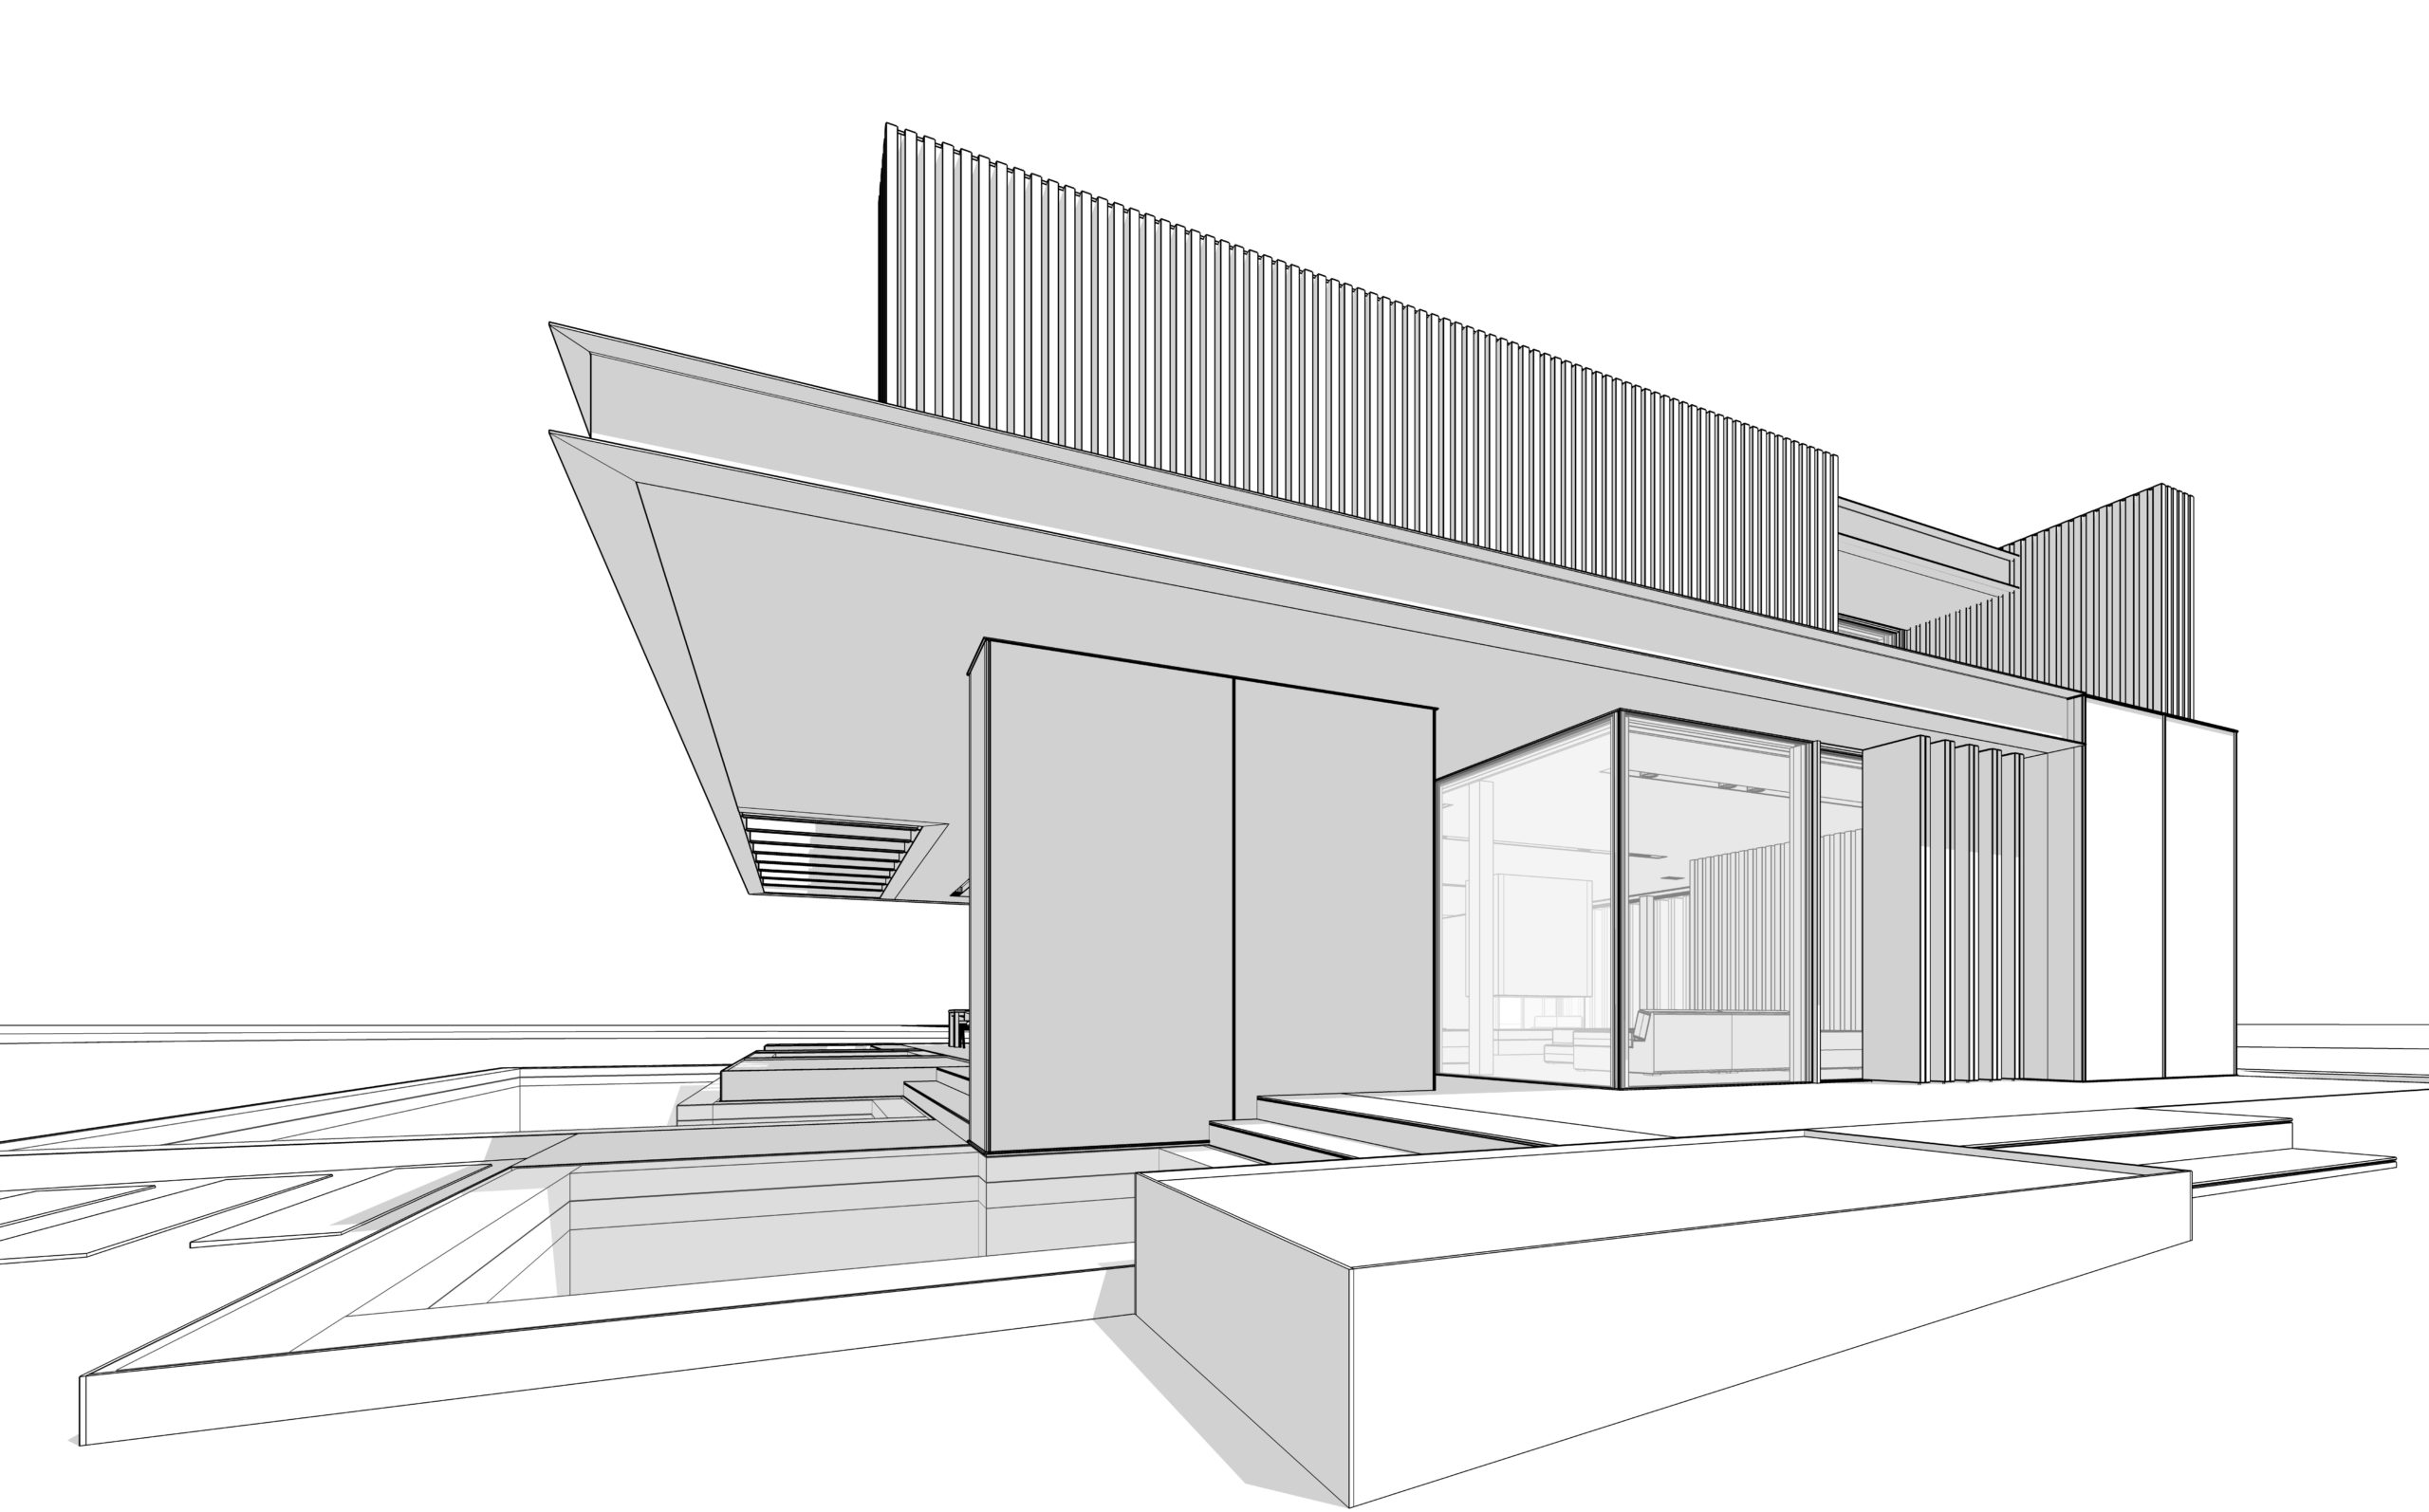 3d rendering of modern cozy house with parking and pool for sale or rent with wood plank facade.  Black line sketch with soft light shadows on white background.